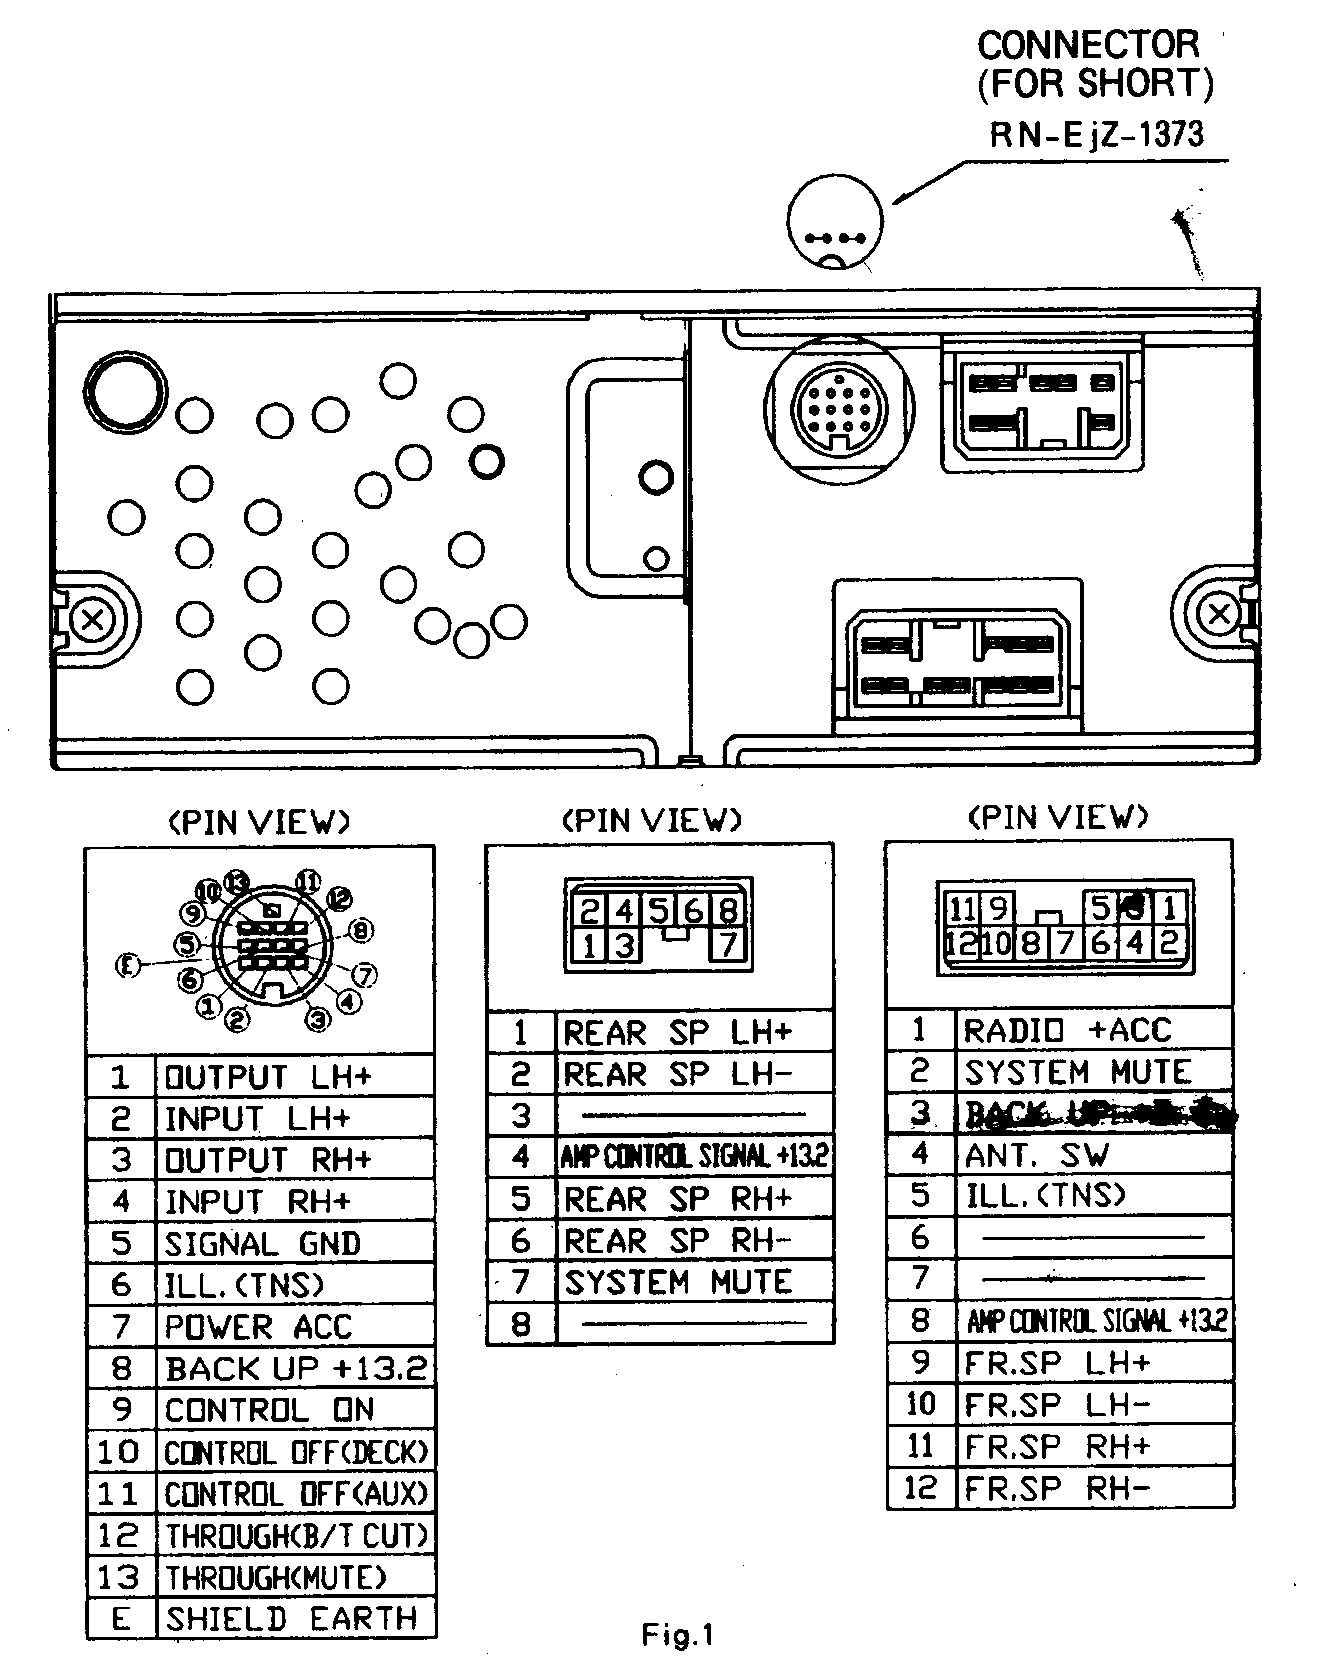 Mazda old Head Unit and CD Changer pinout diagram